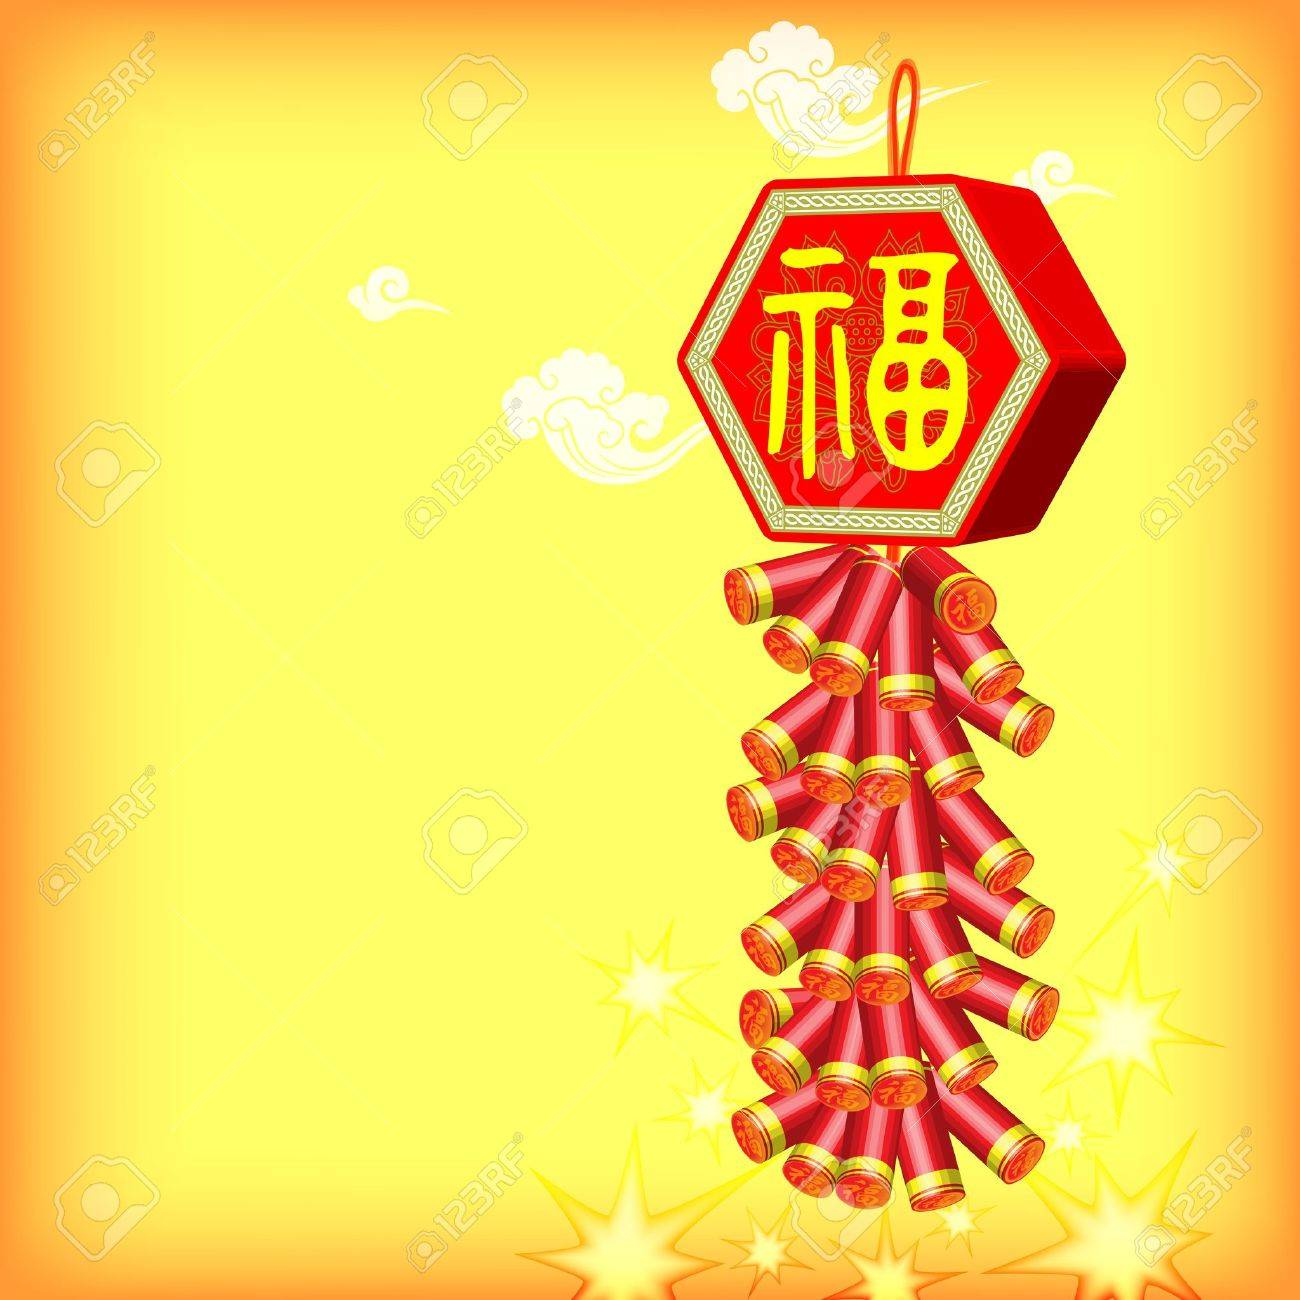 vector yellow background with fire cracker happy new year and chinese festivals chinese